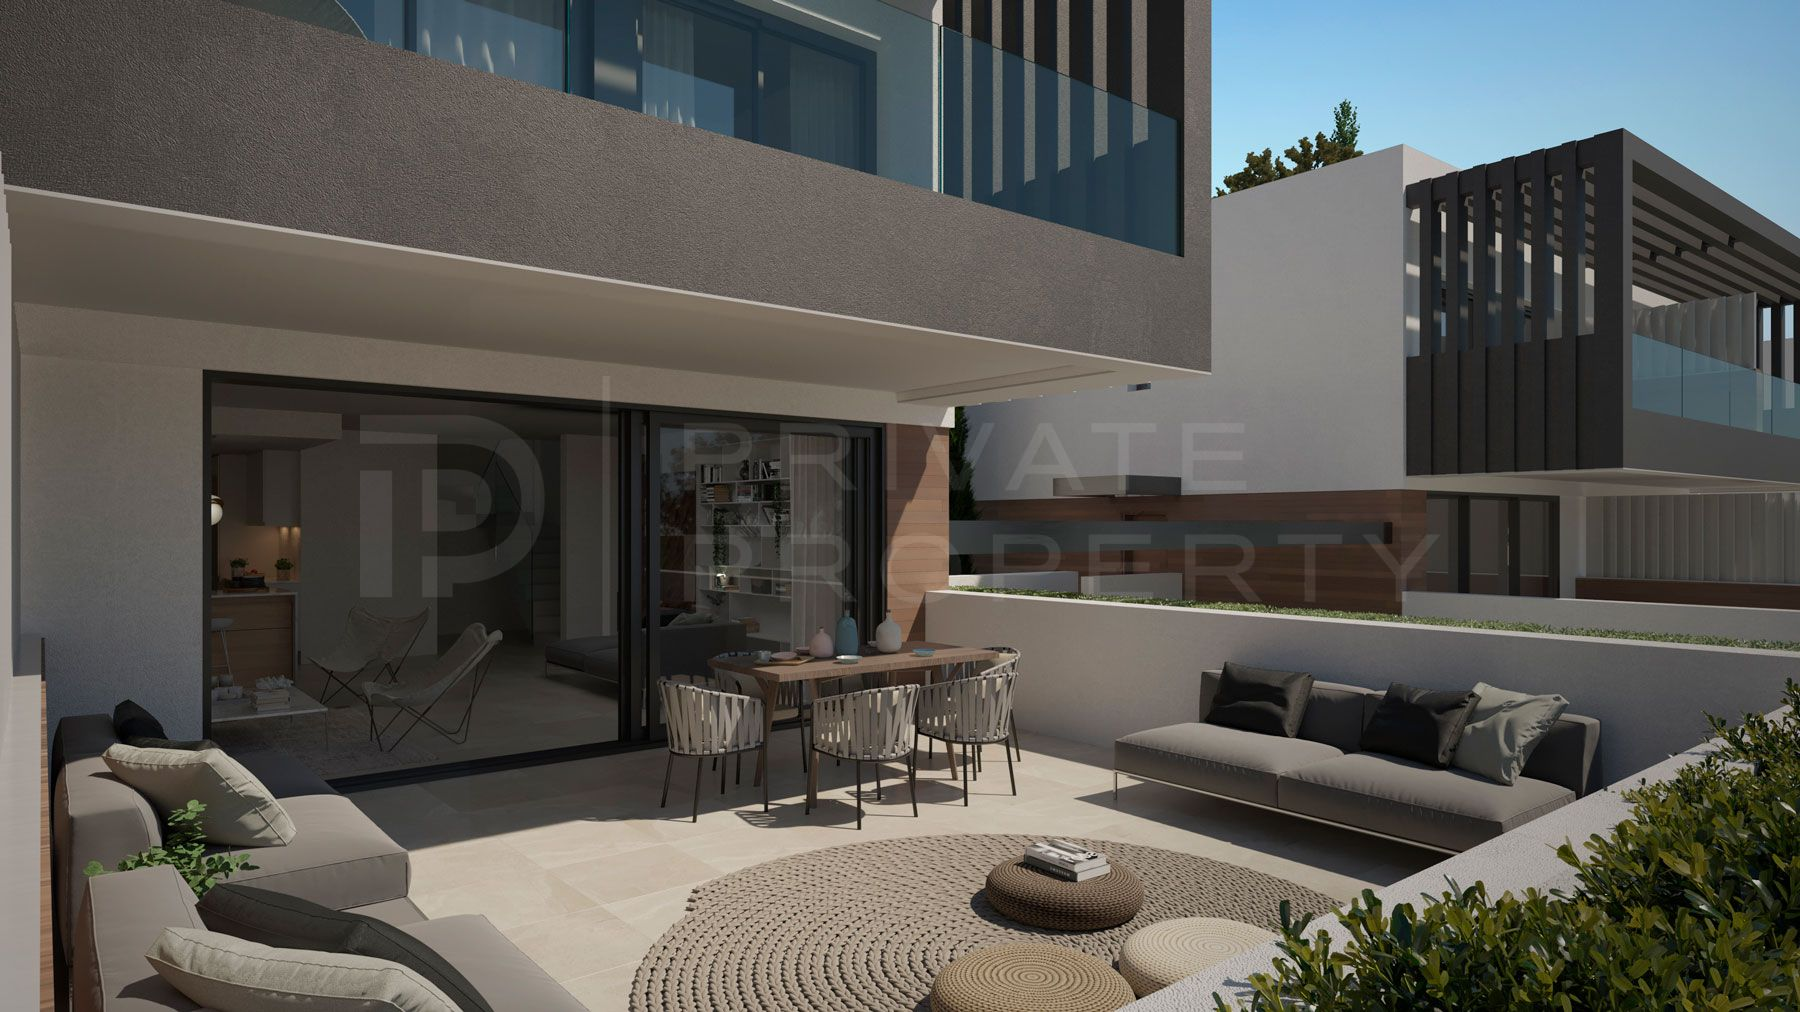 50 First Line Golf semi-detached villas. Located next to the Atalaya Golf Country Club